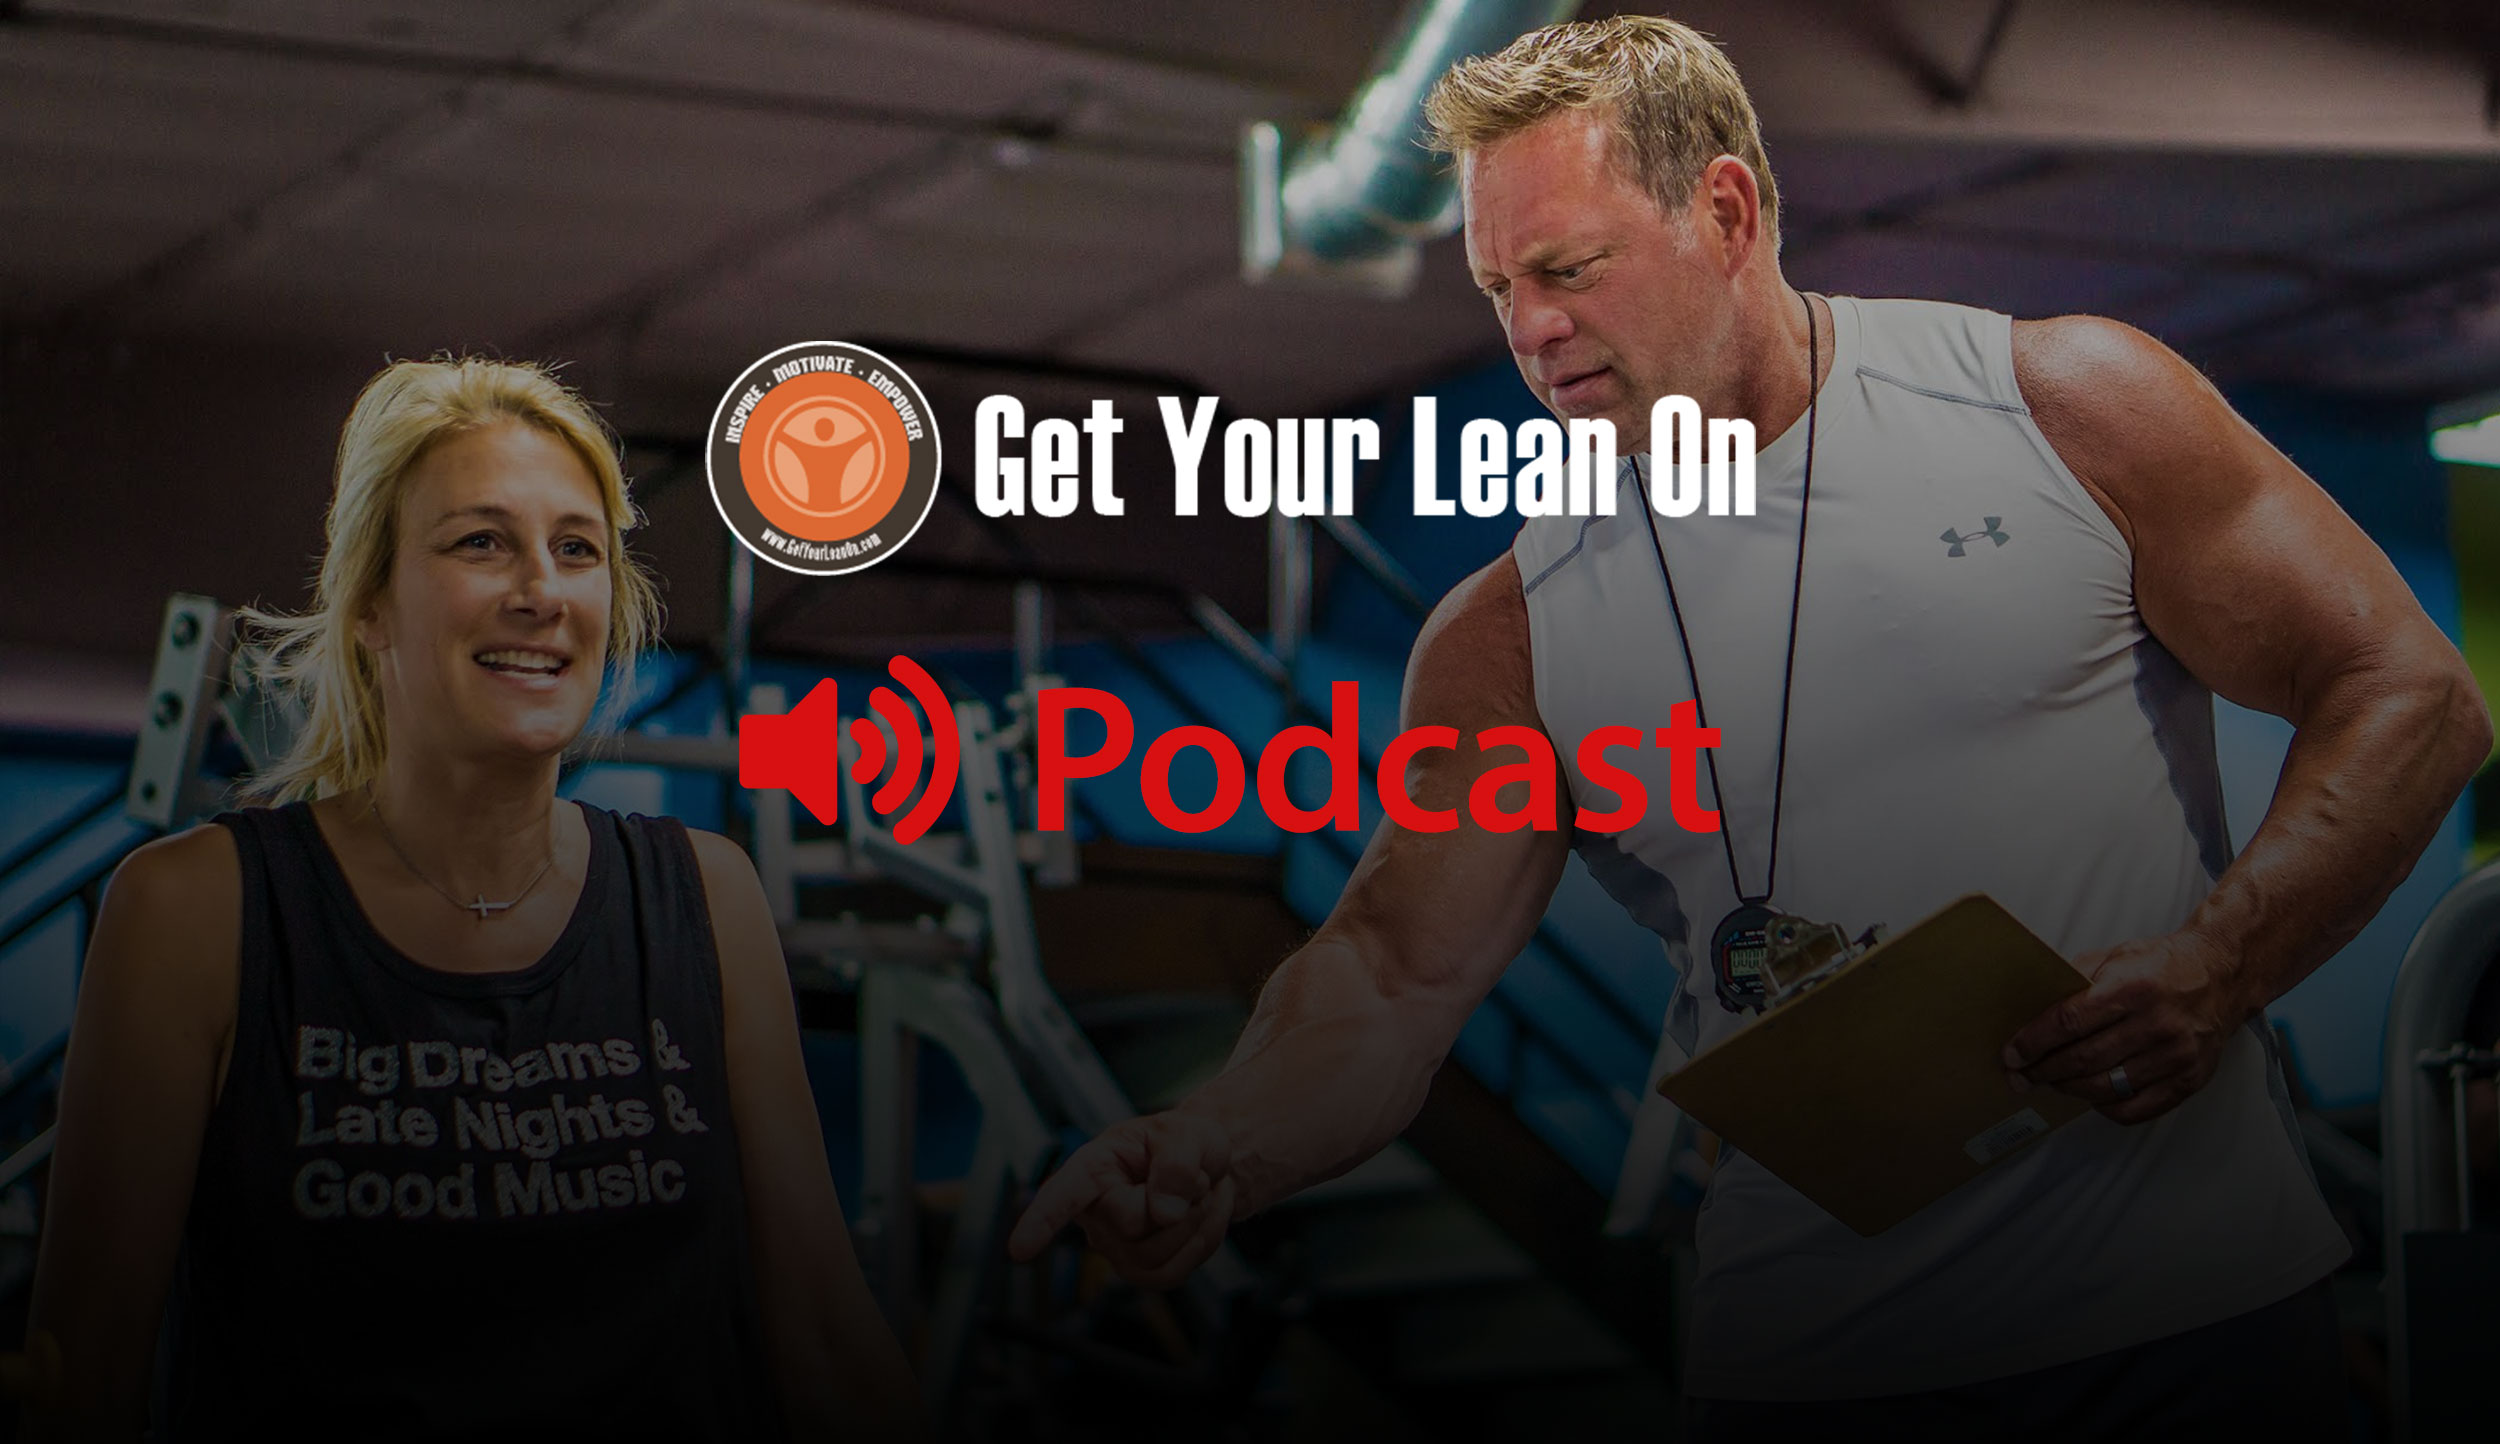 GYLO Podcast – What You Need to Know About Going Keto